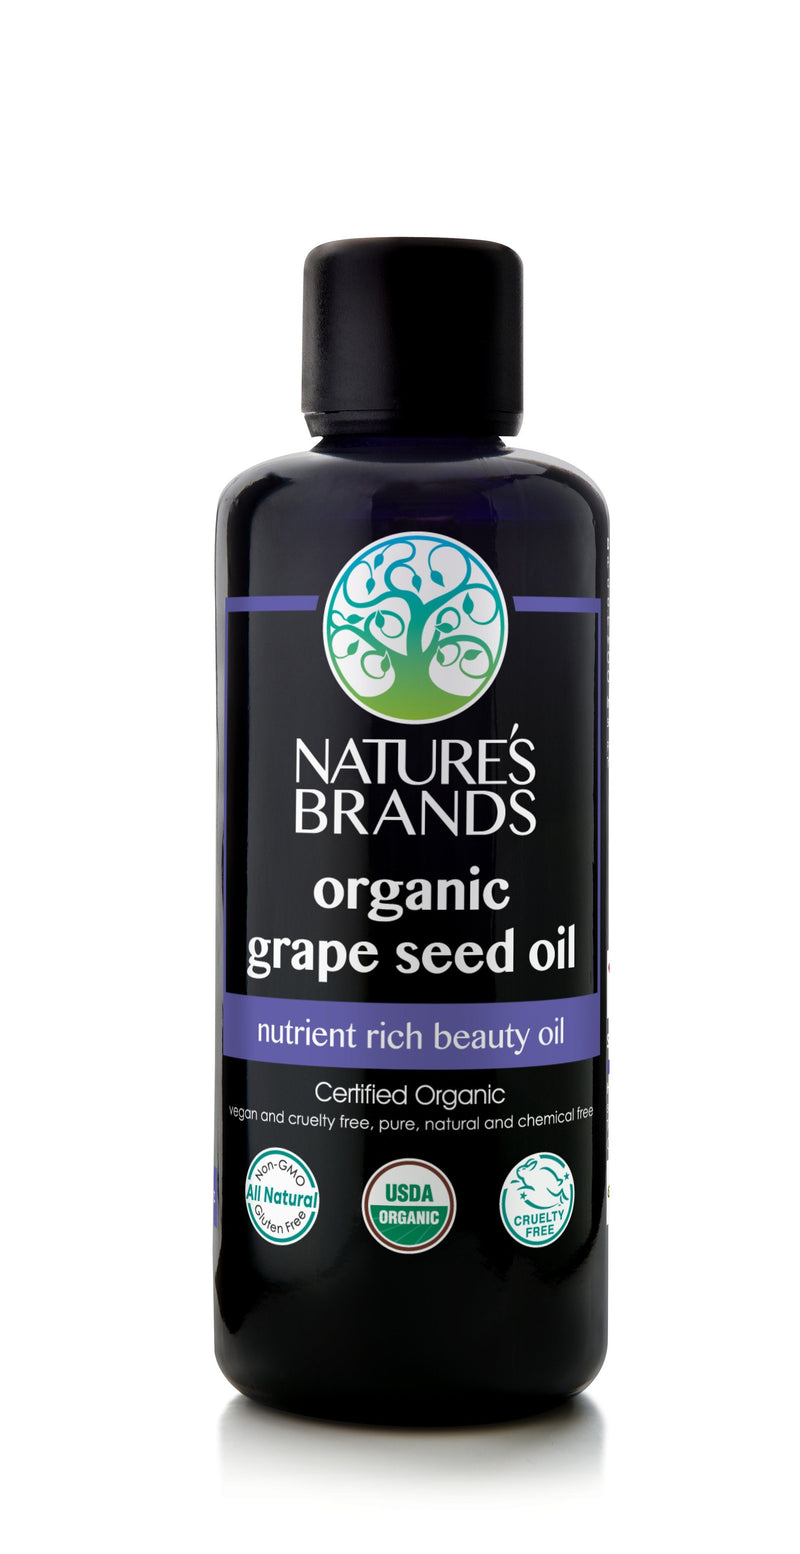 Herbal Choice Mari Organic Grape Seed Oil 100ml/3.4oz Glass Bottle